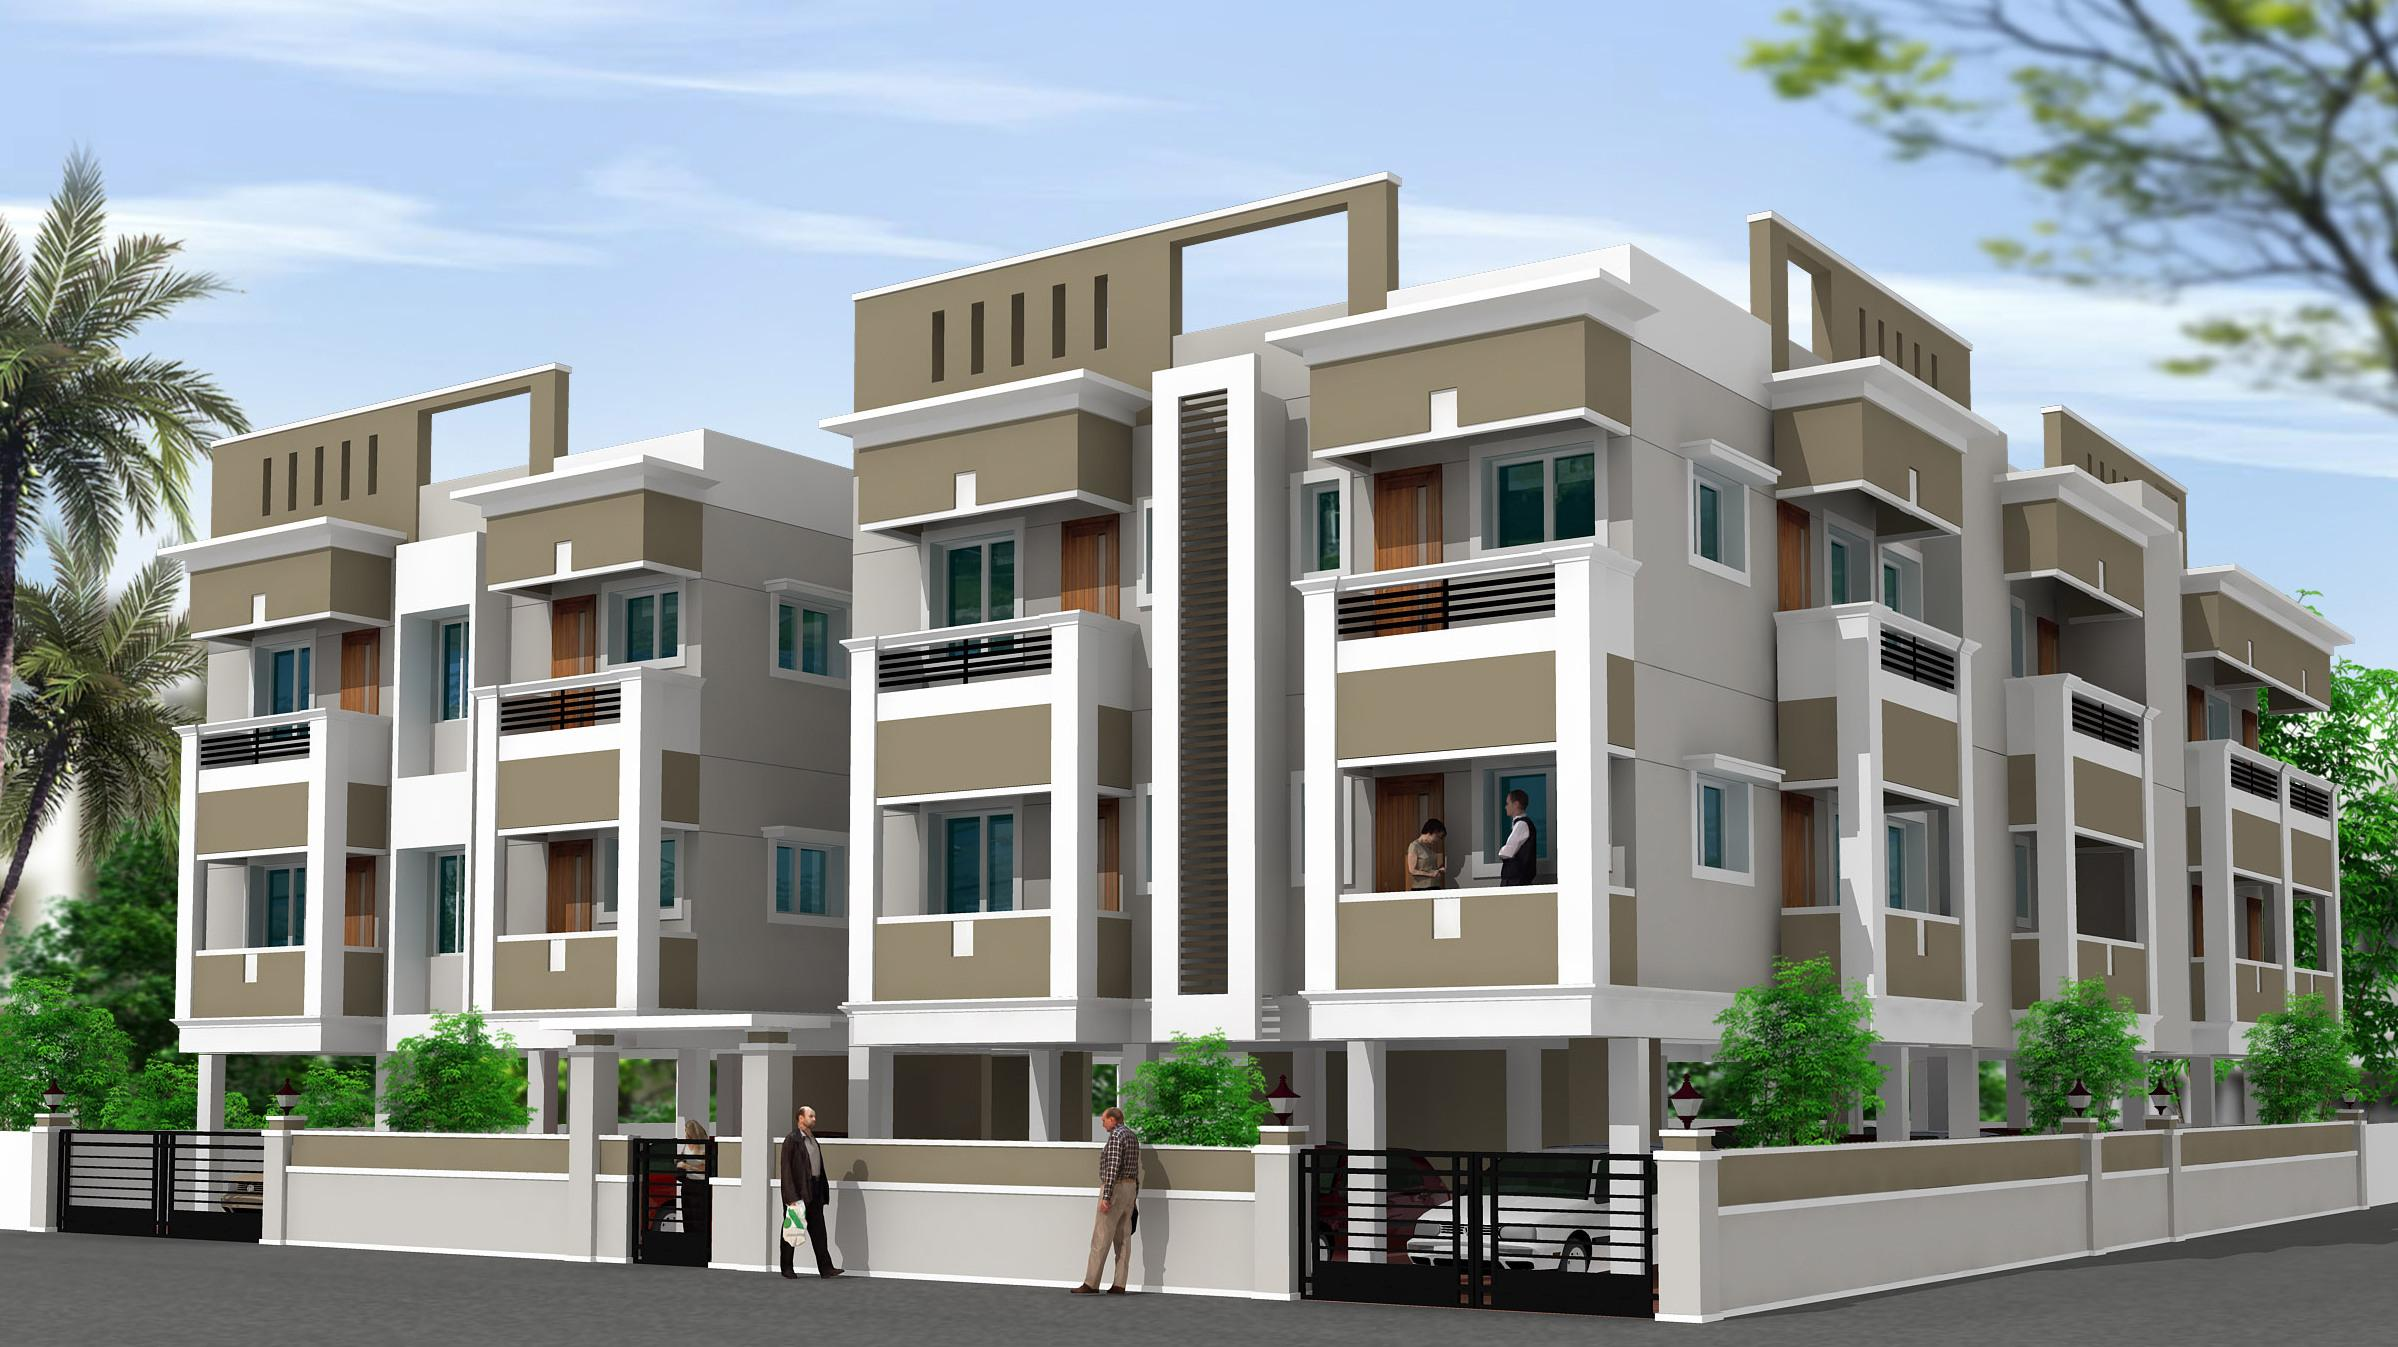 Residential building elevation design with detailing for Residential building plans